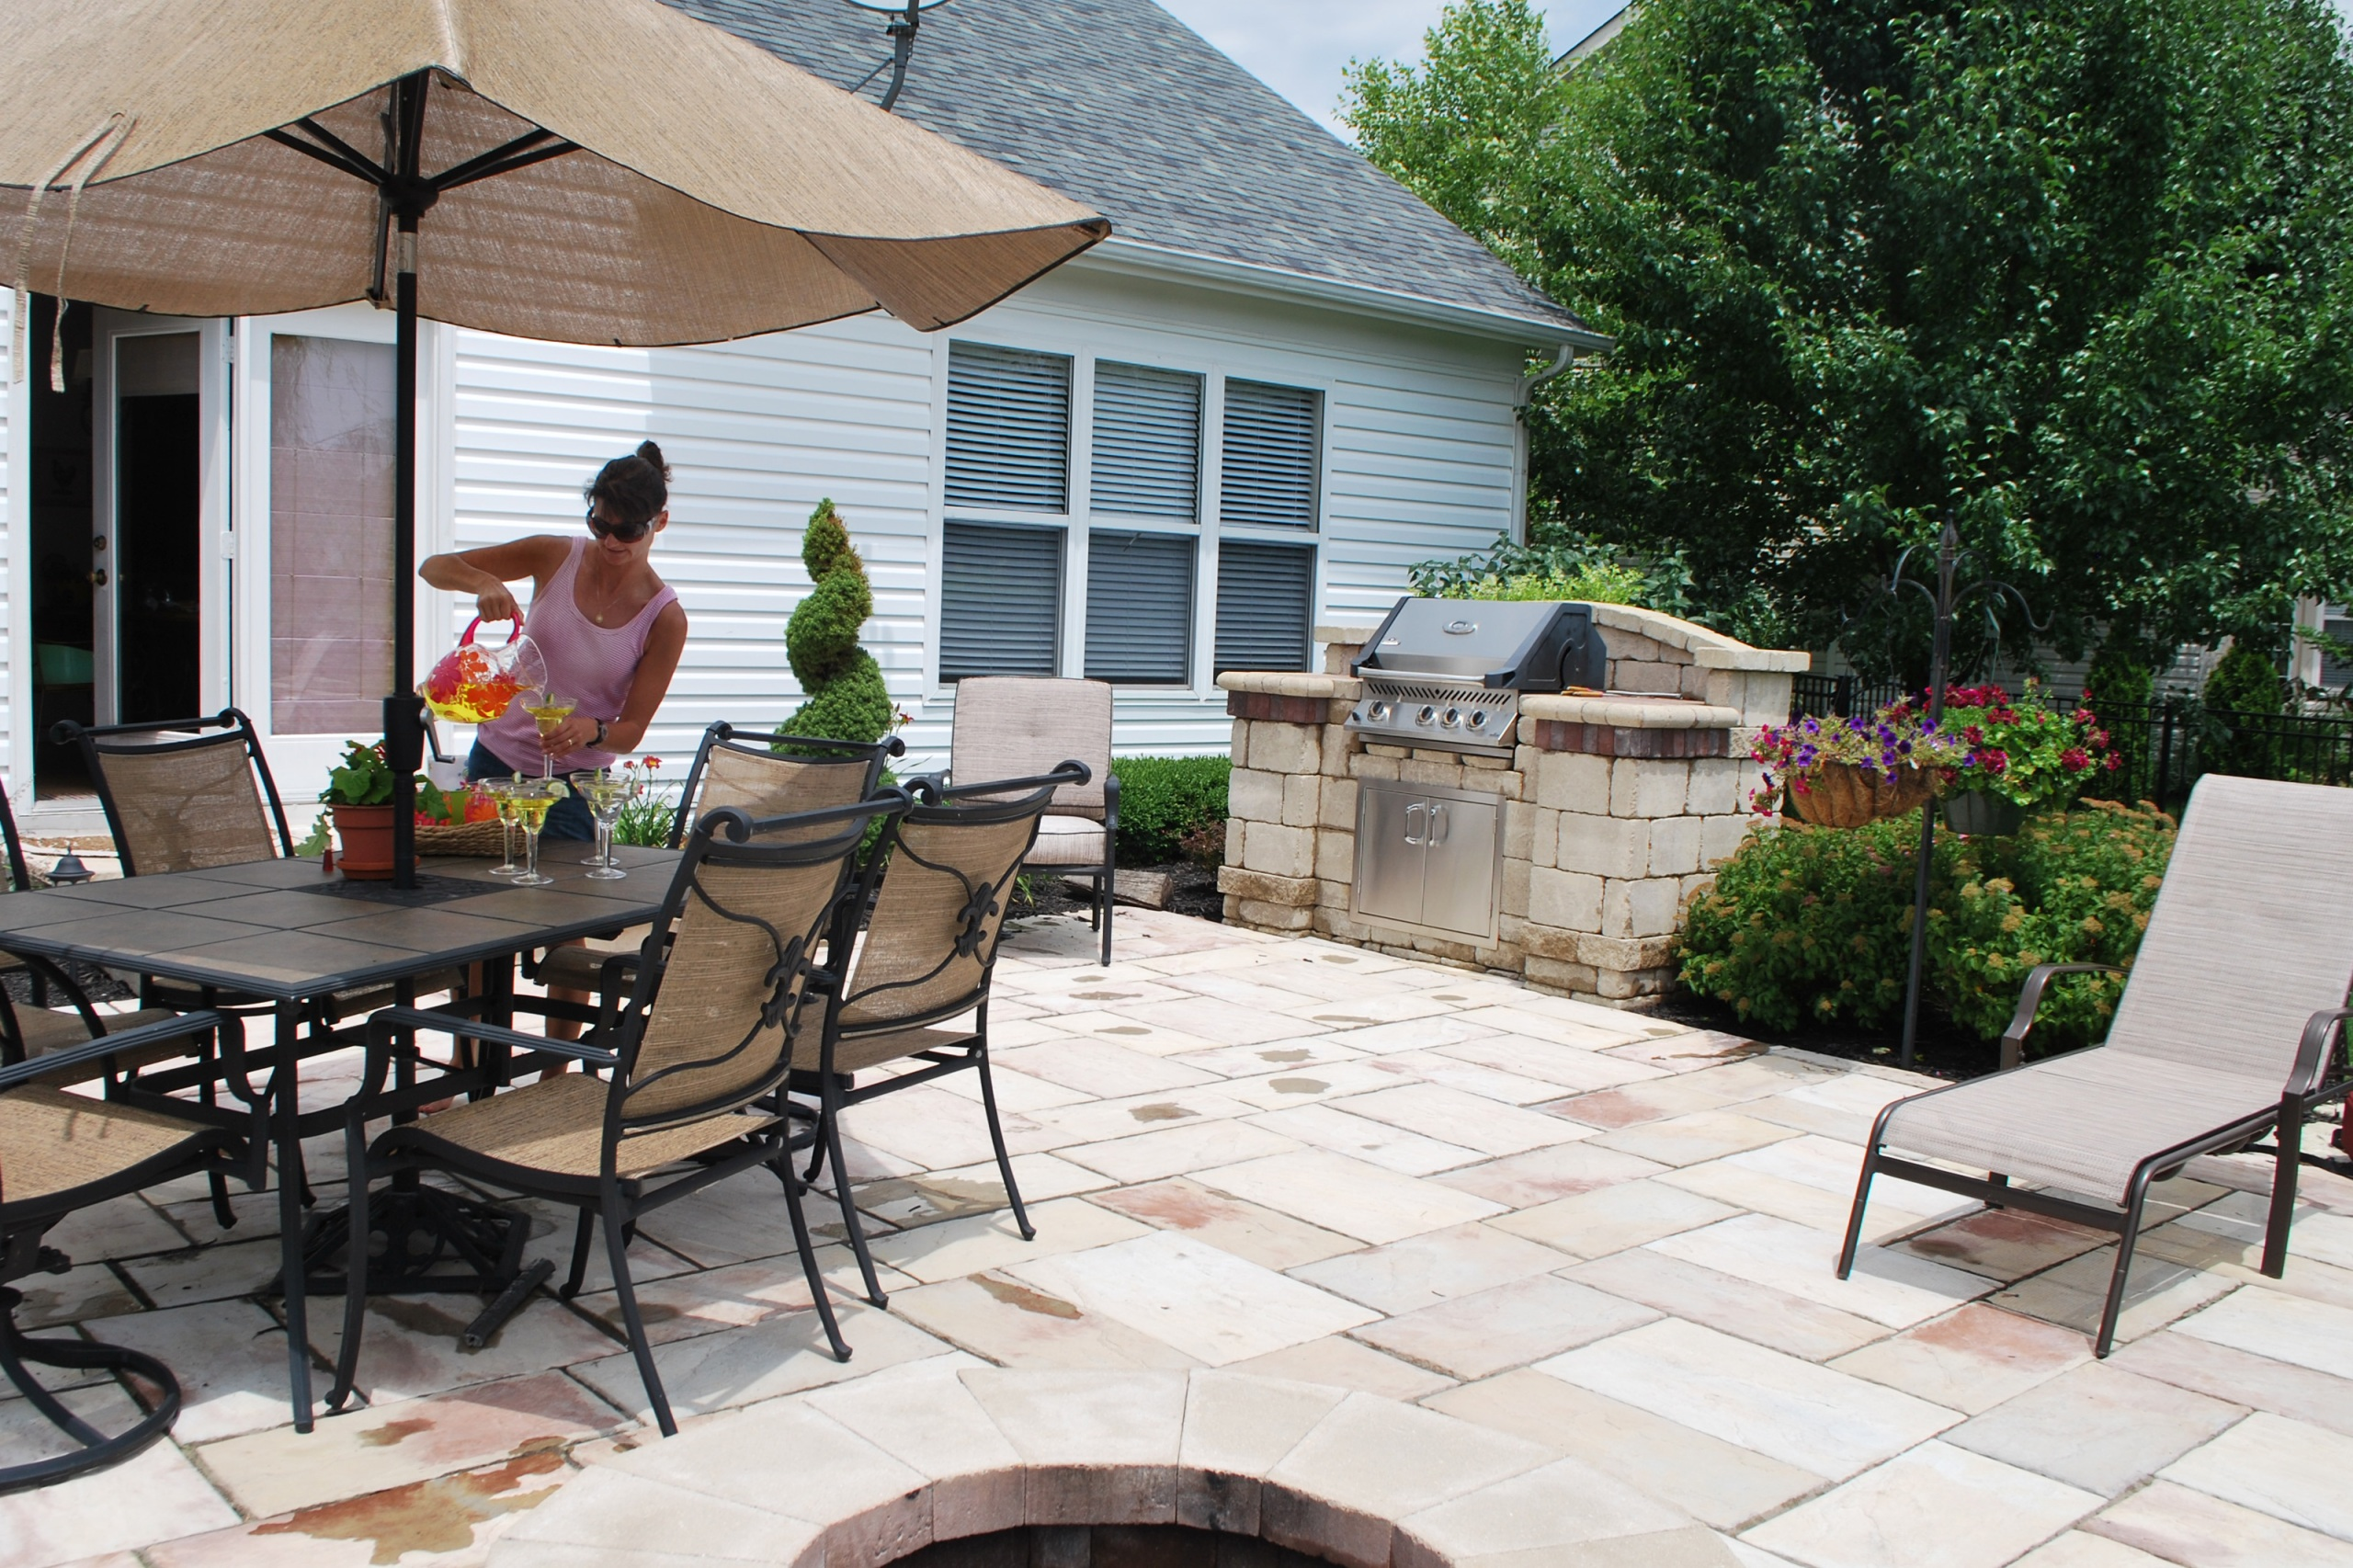 Woman pouring drinks on backyard patio with grill